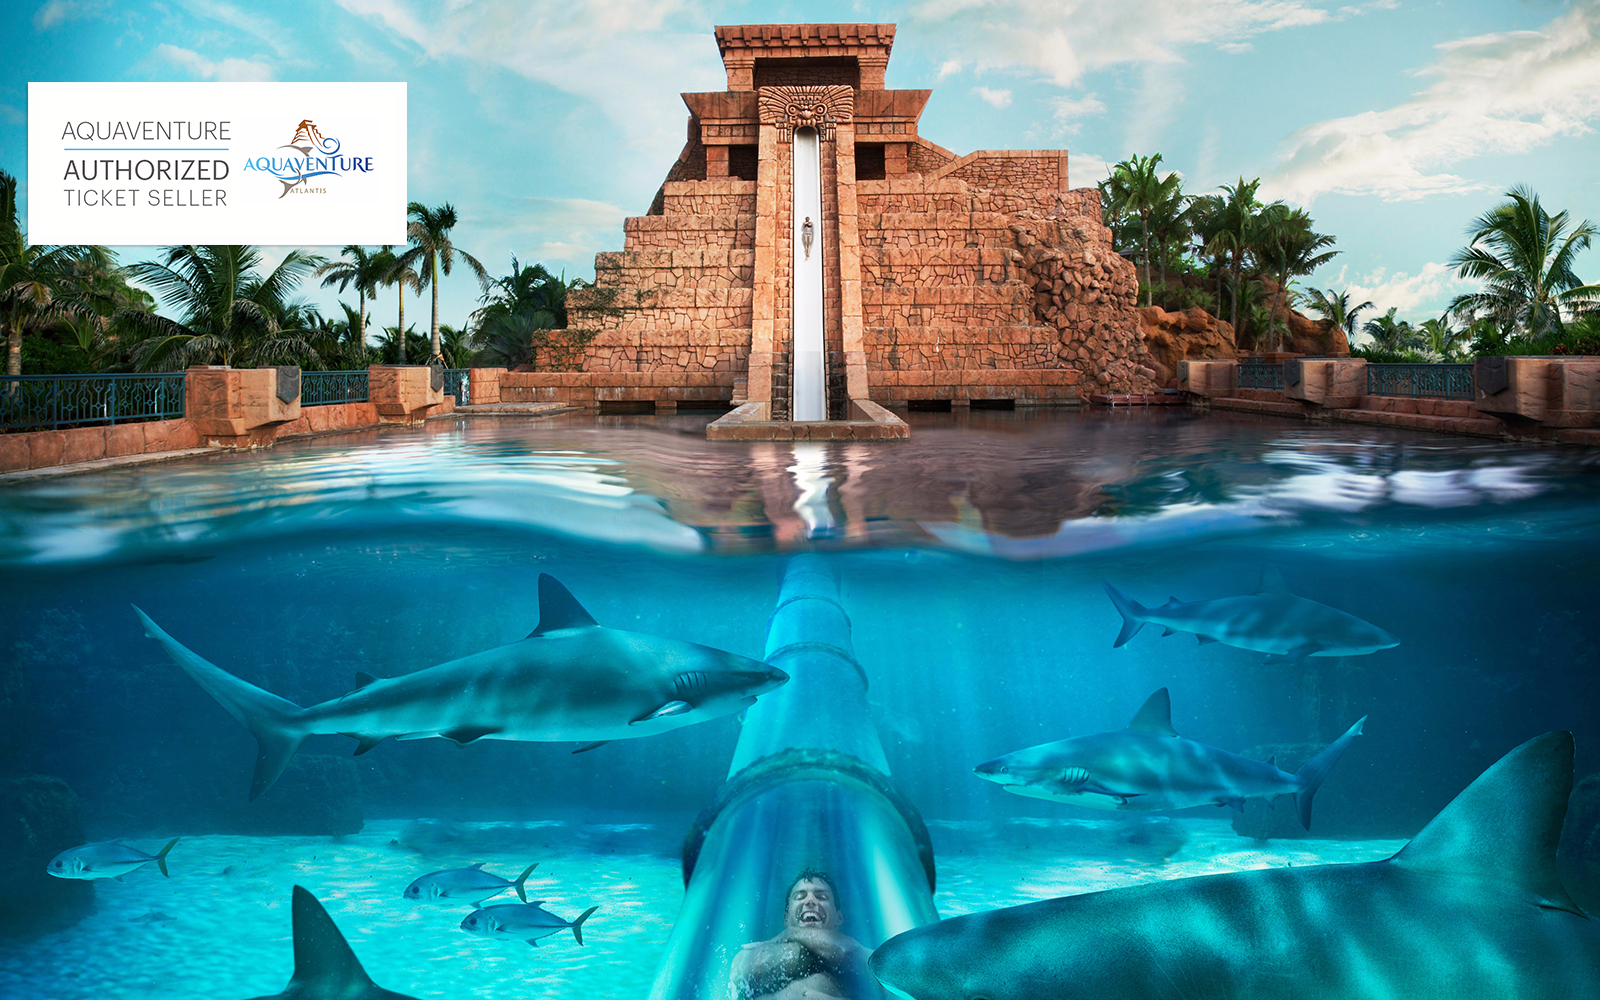 65cd1b20 2f56 4772 9c0a 4f0c56a82d9f 1870 dubai aquaventure water park tickets 01